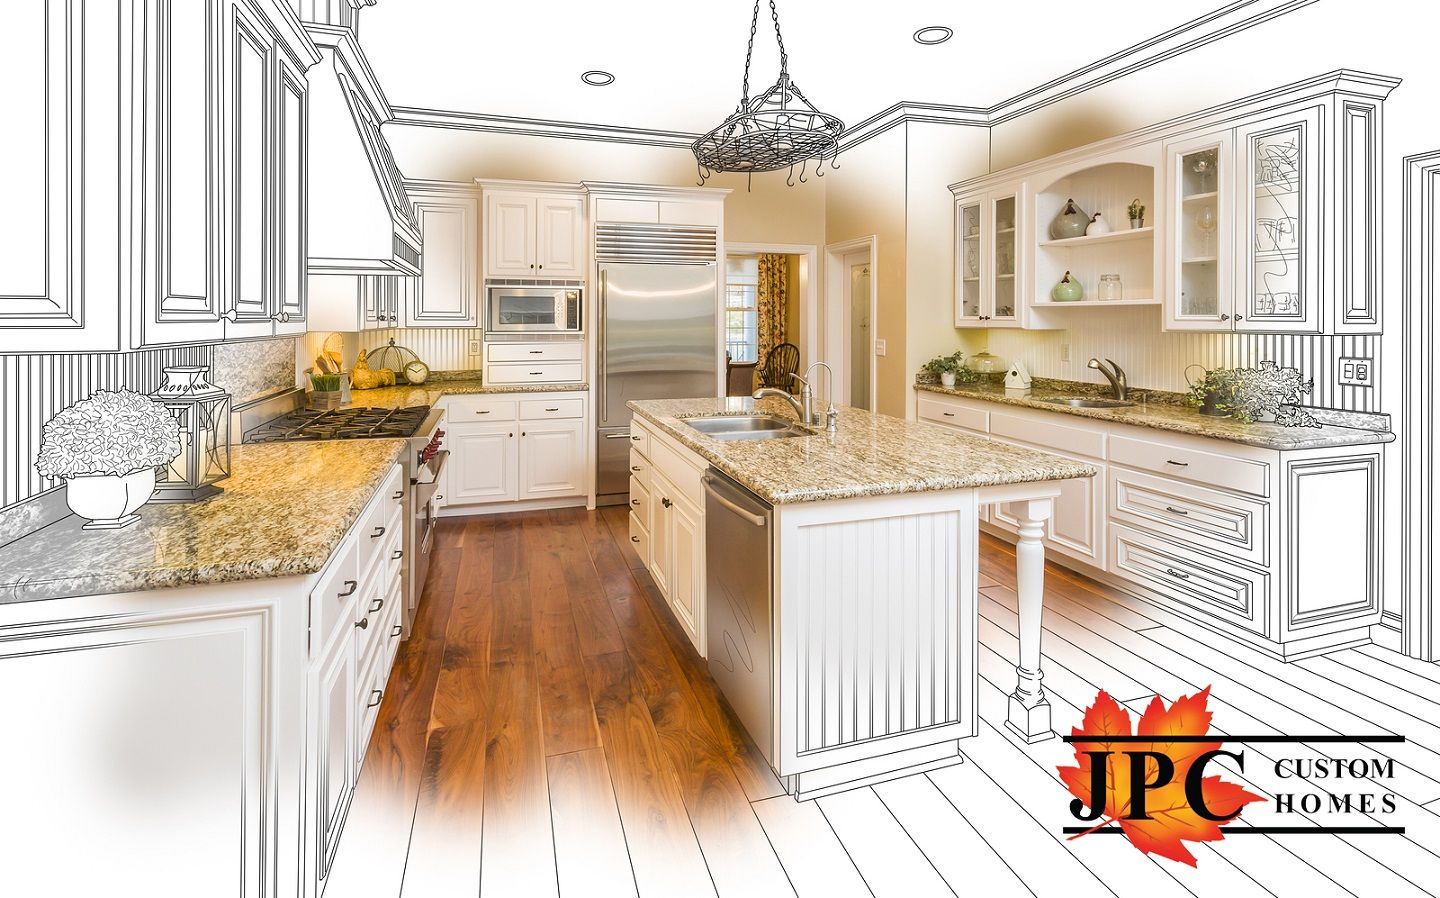 You picture it in your head jpc custom homes helps you accomplish